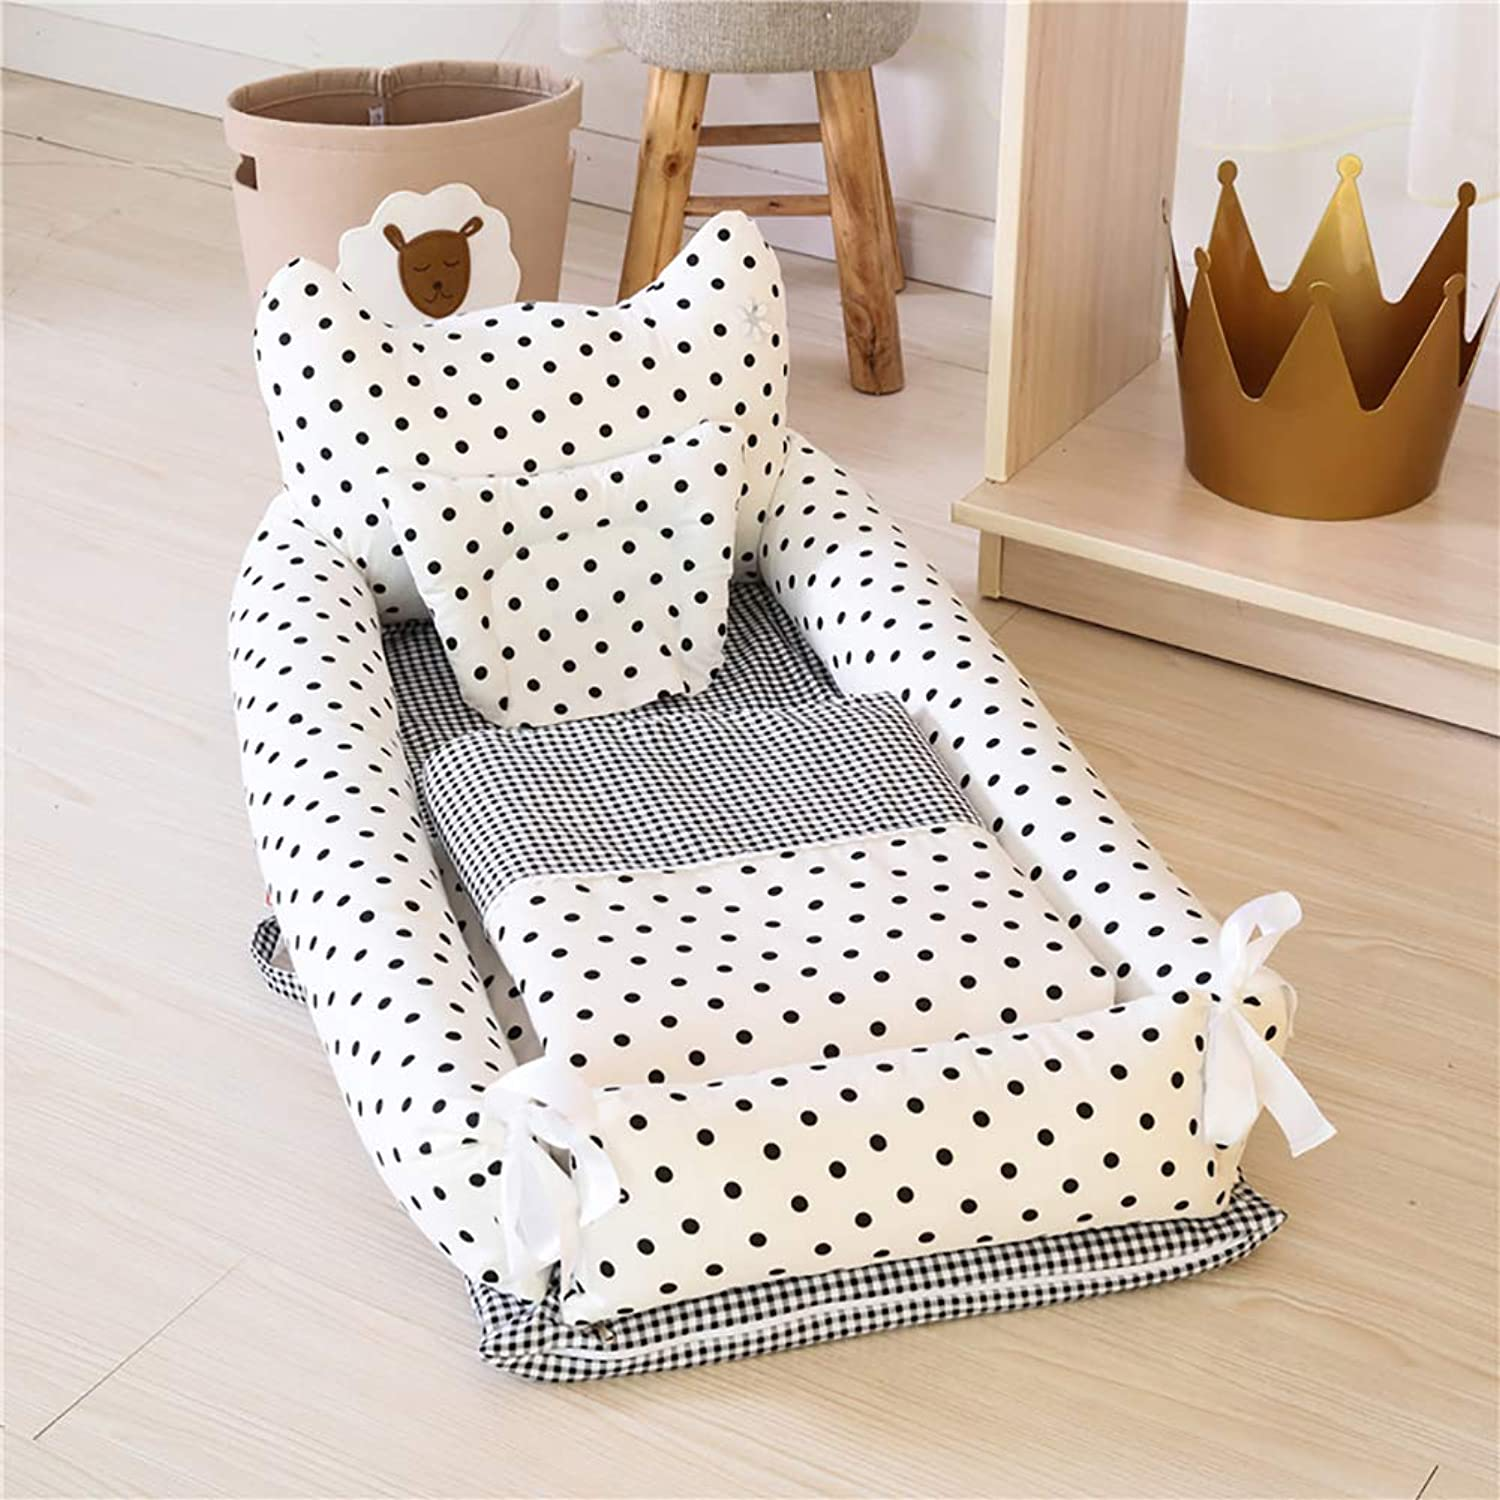 Baby Lounger Baby Bassinet for Bed Breathable Hypoallergenic 100% Cotton Portable Crib for Bedroom & Travel Newborn Super Soft